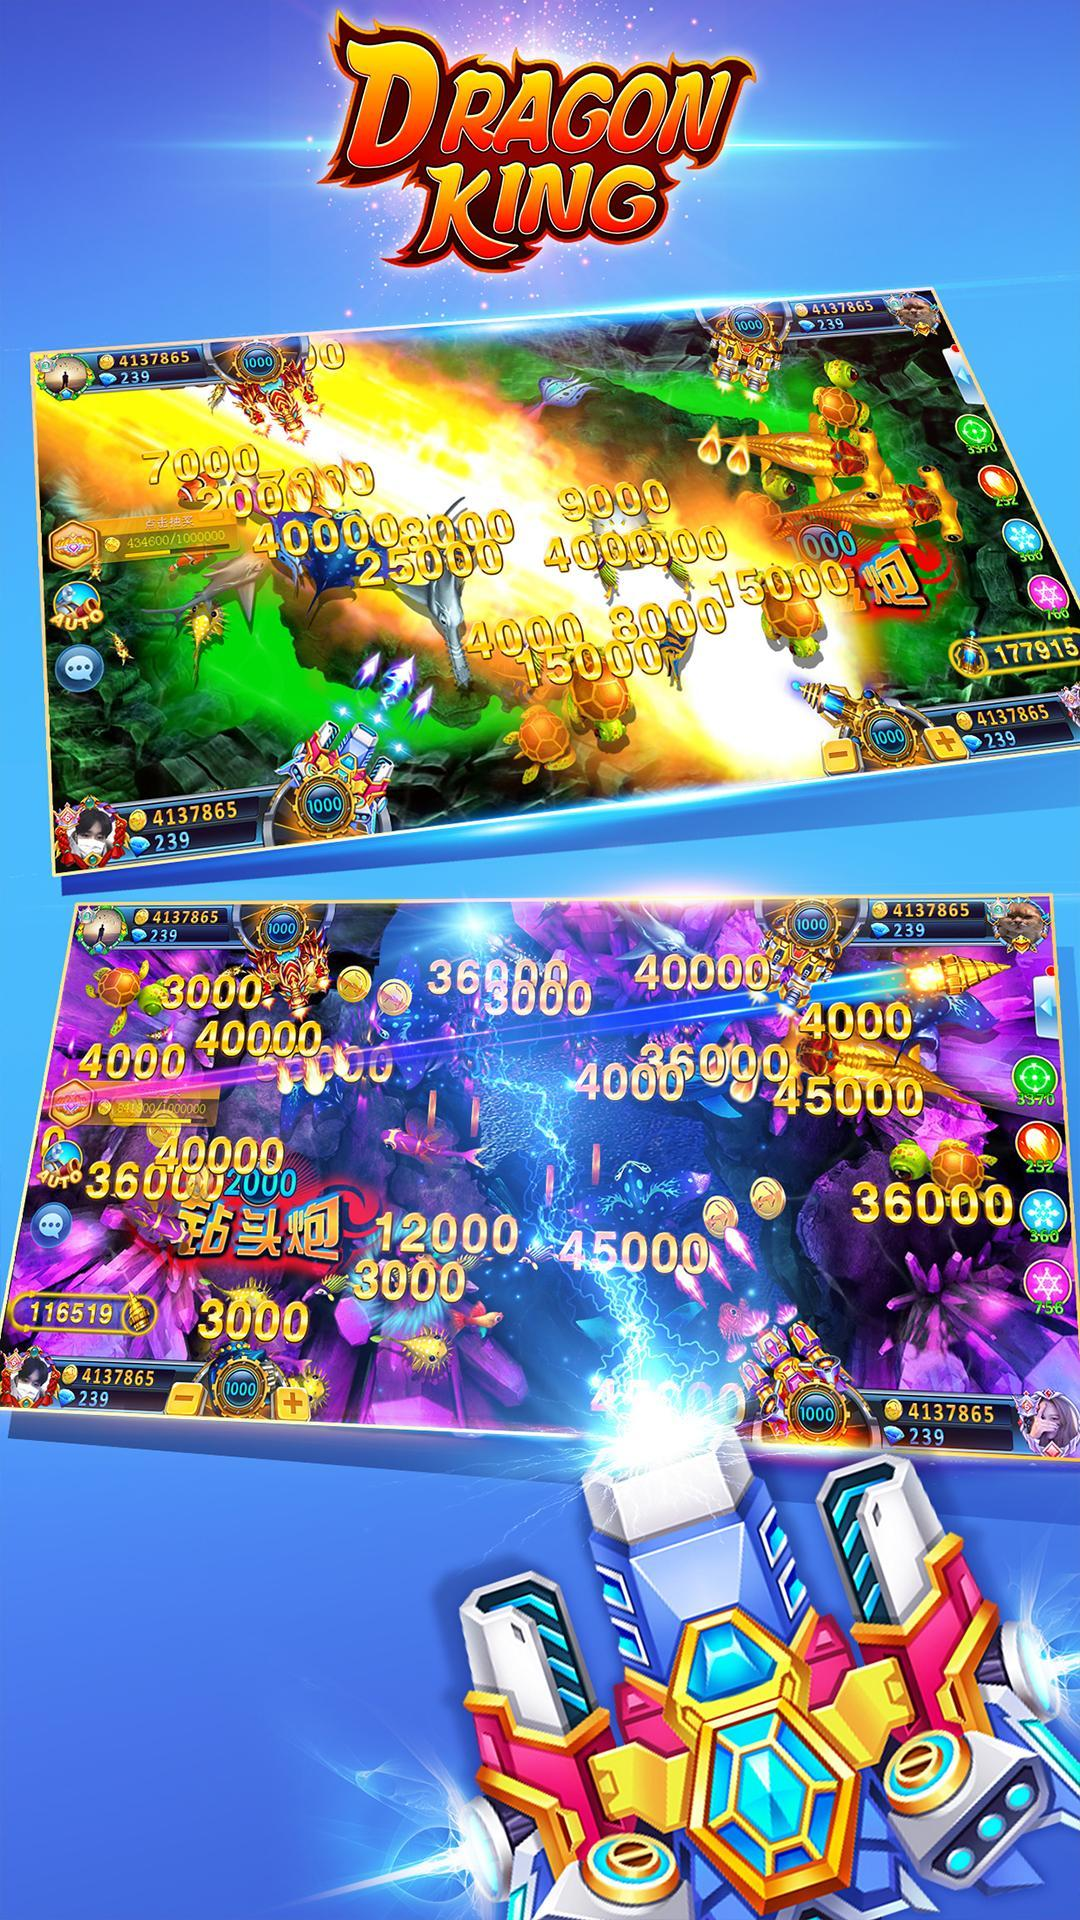 Dragon King Fishing Online-Arcade  Fish Games 5.2.0 Screenshot 10